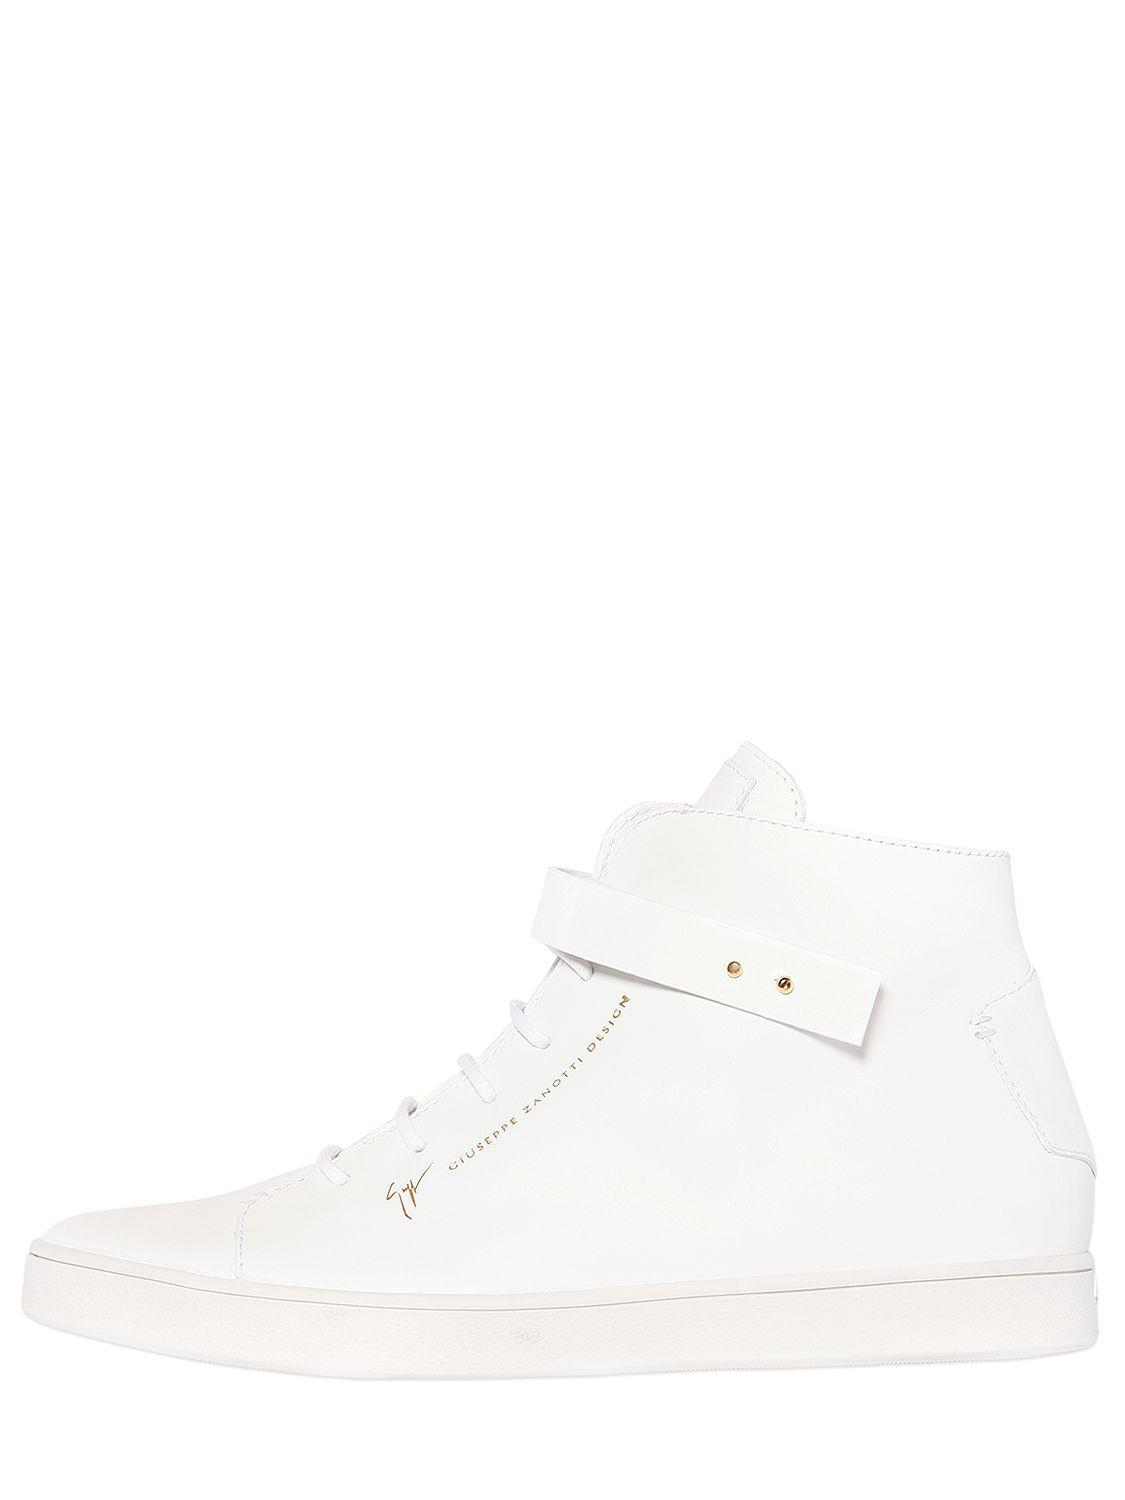 Giuseppe ZanottiPATENT BANGLE BRUSHED LEATHER SNEAKERS knEyLEgnFS